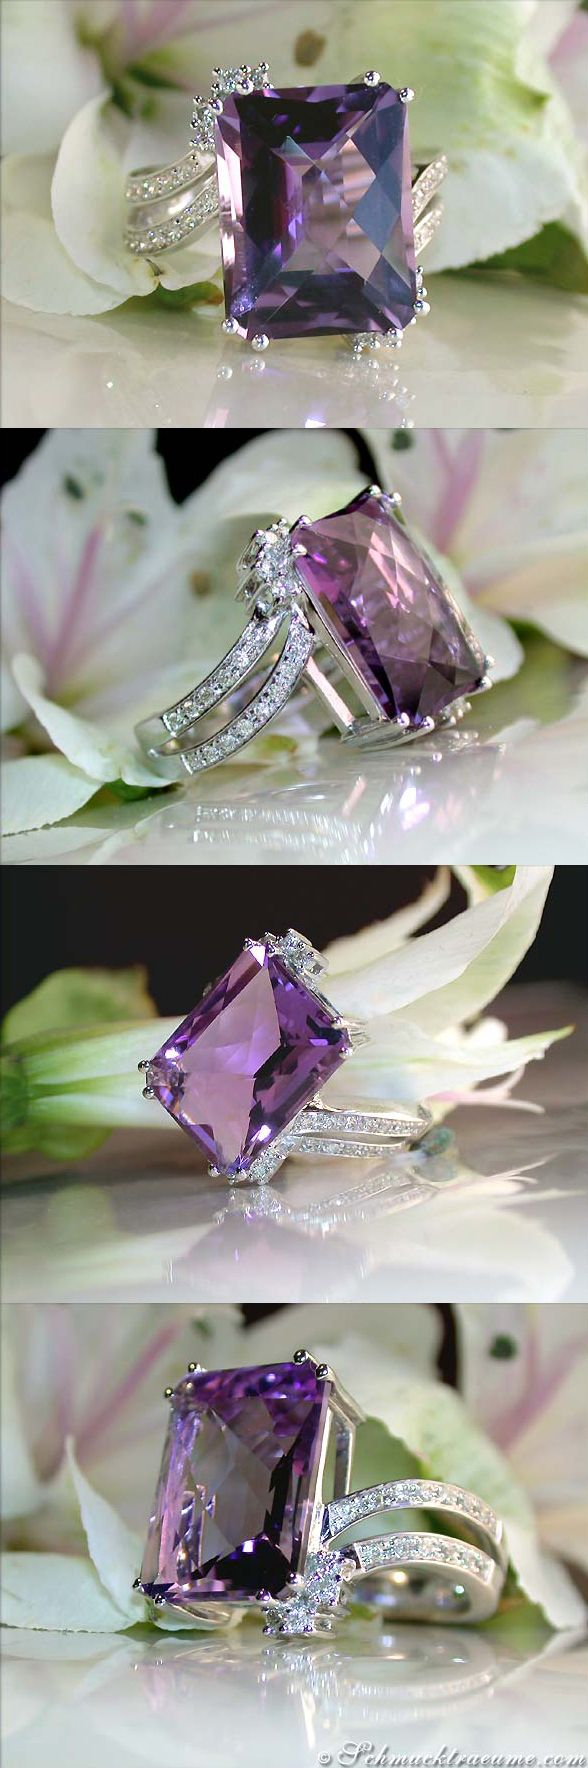 Picture Perfect: Amethyst Ring with Diamonds, 10.13 ct. WG-14K